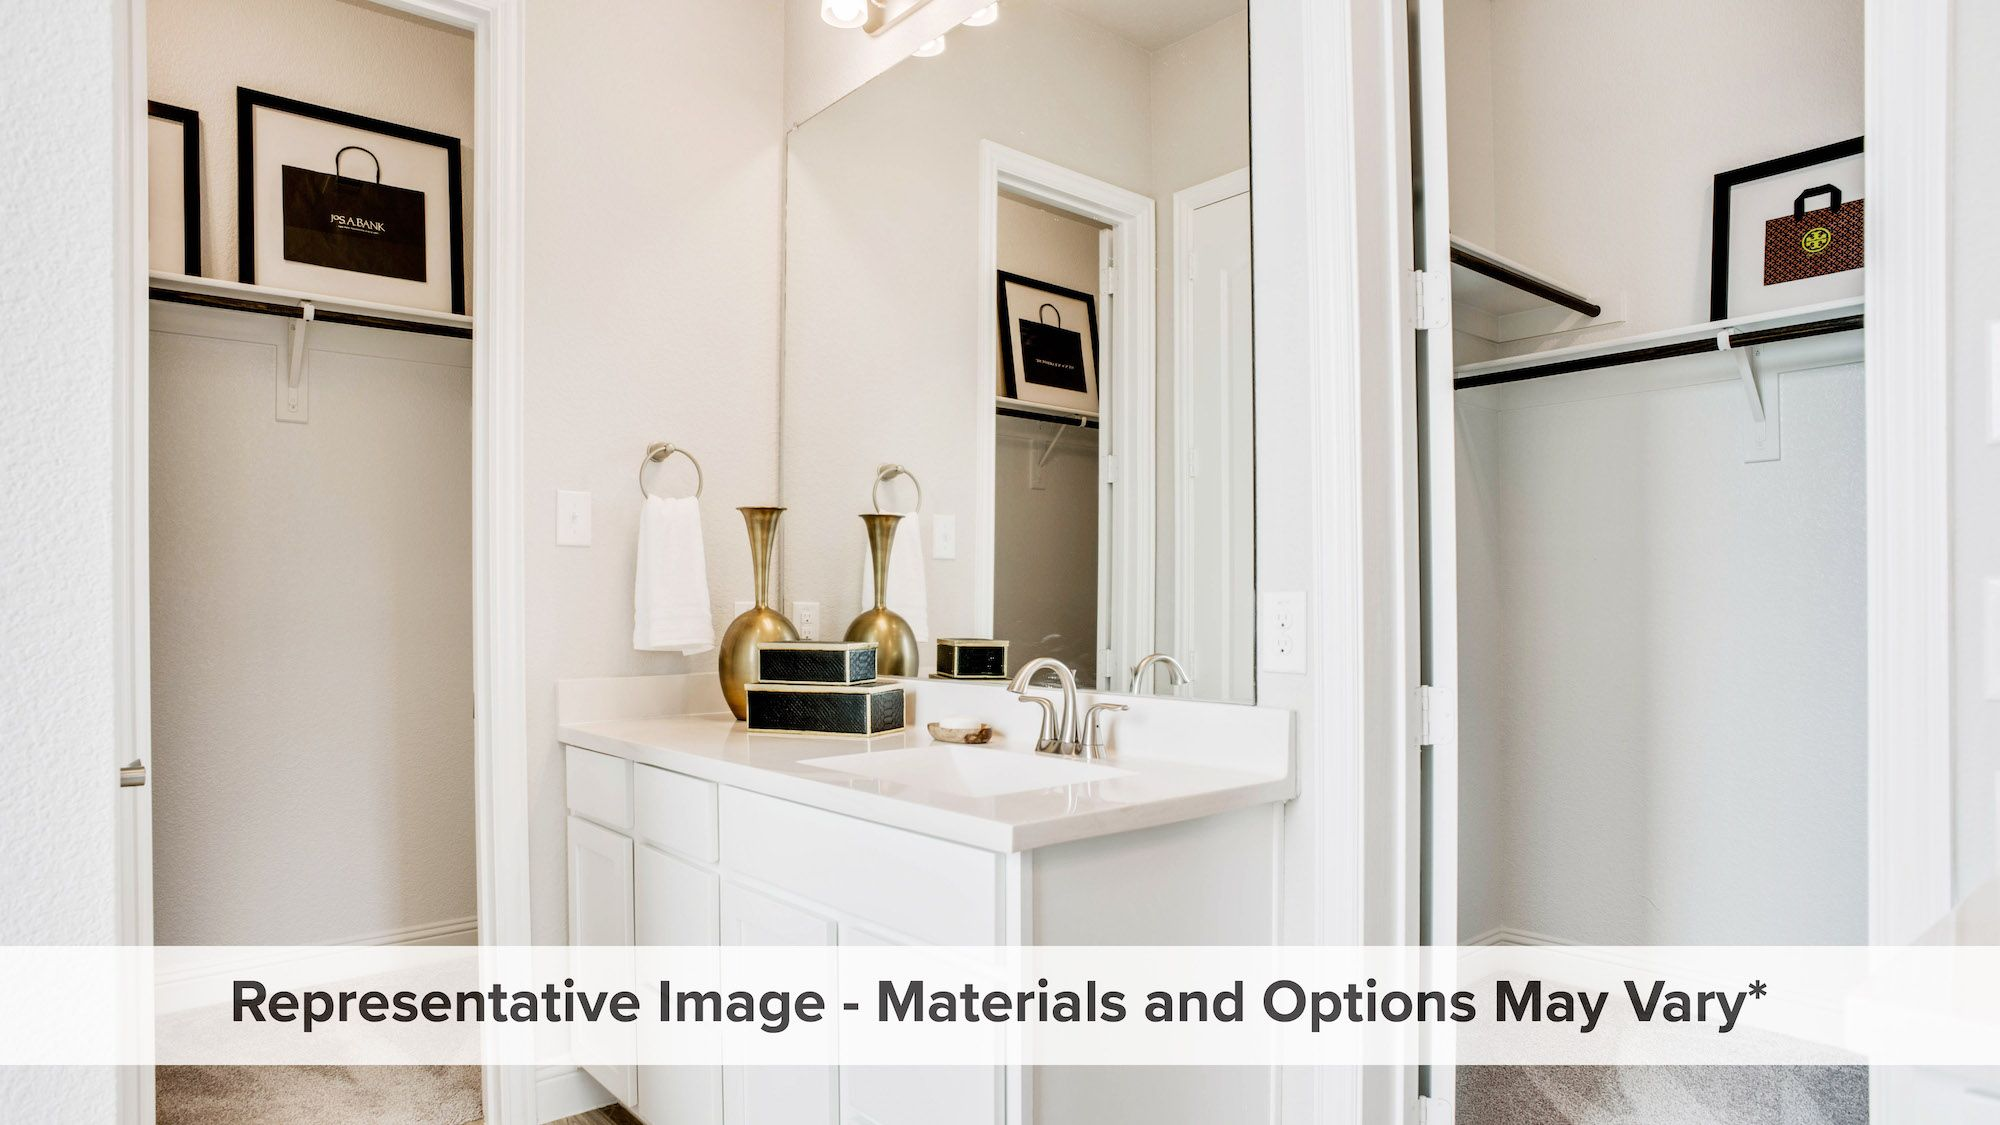 Bathroom featured in the Ironwood By HistoryMaker Homes    in Dallas, TX